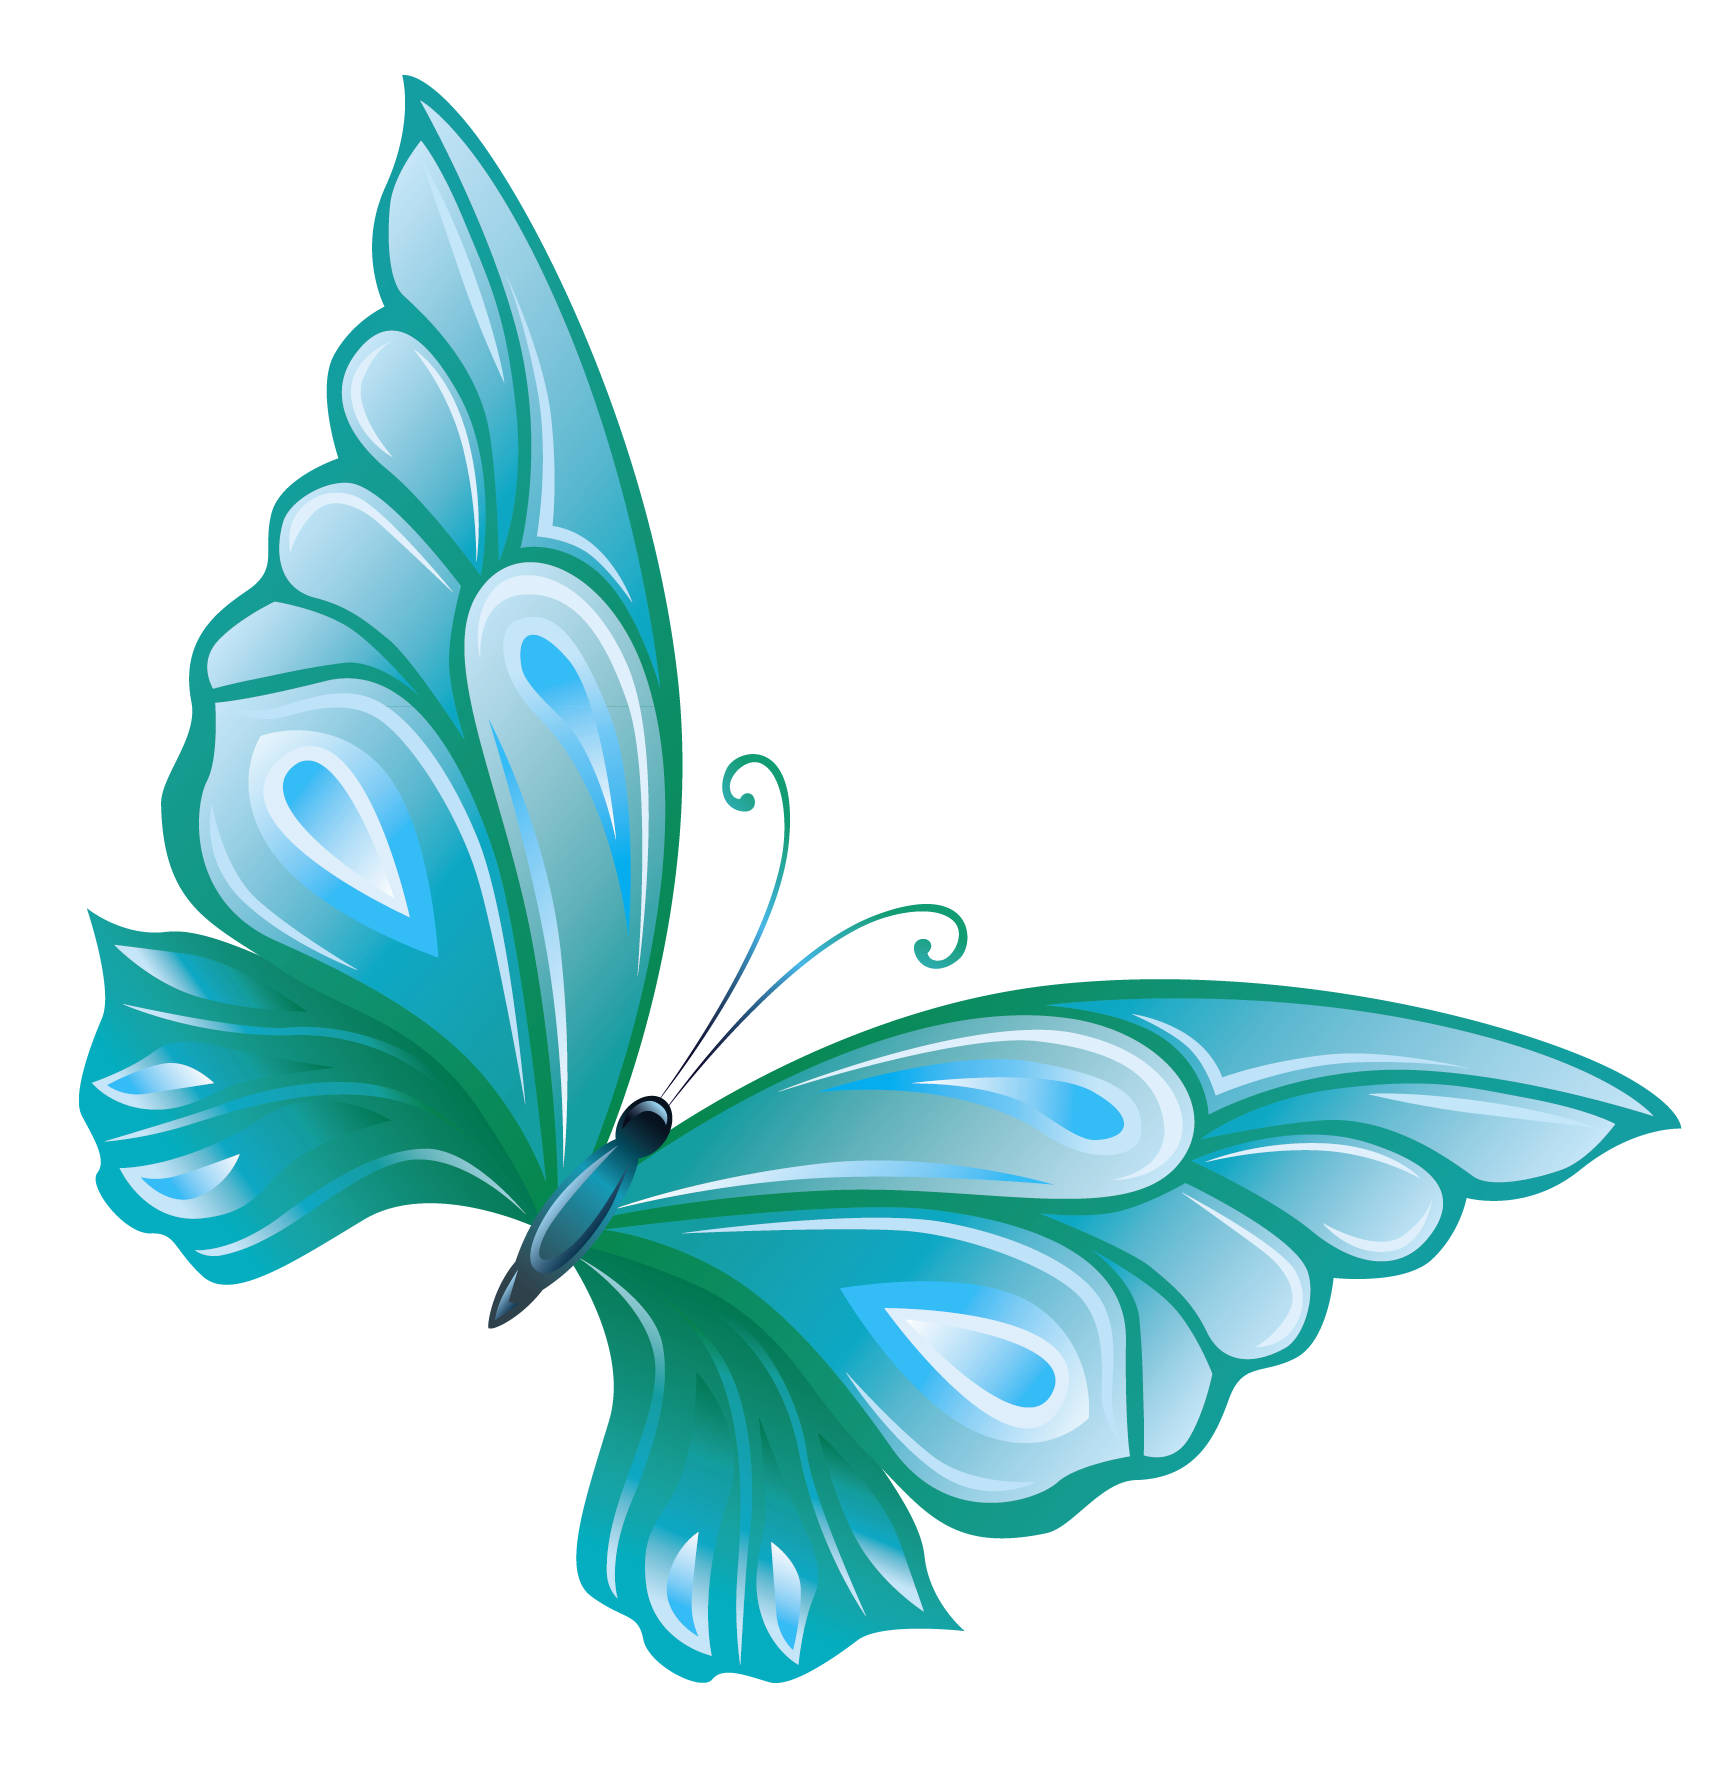 Turquoise butterfly clipart.